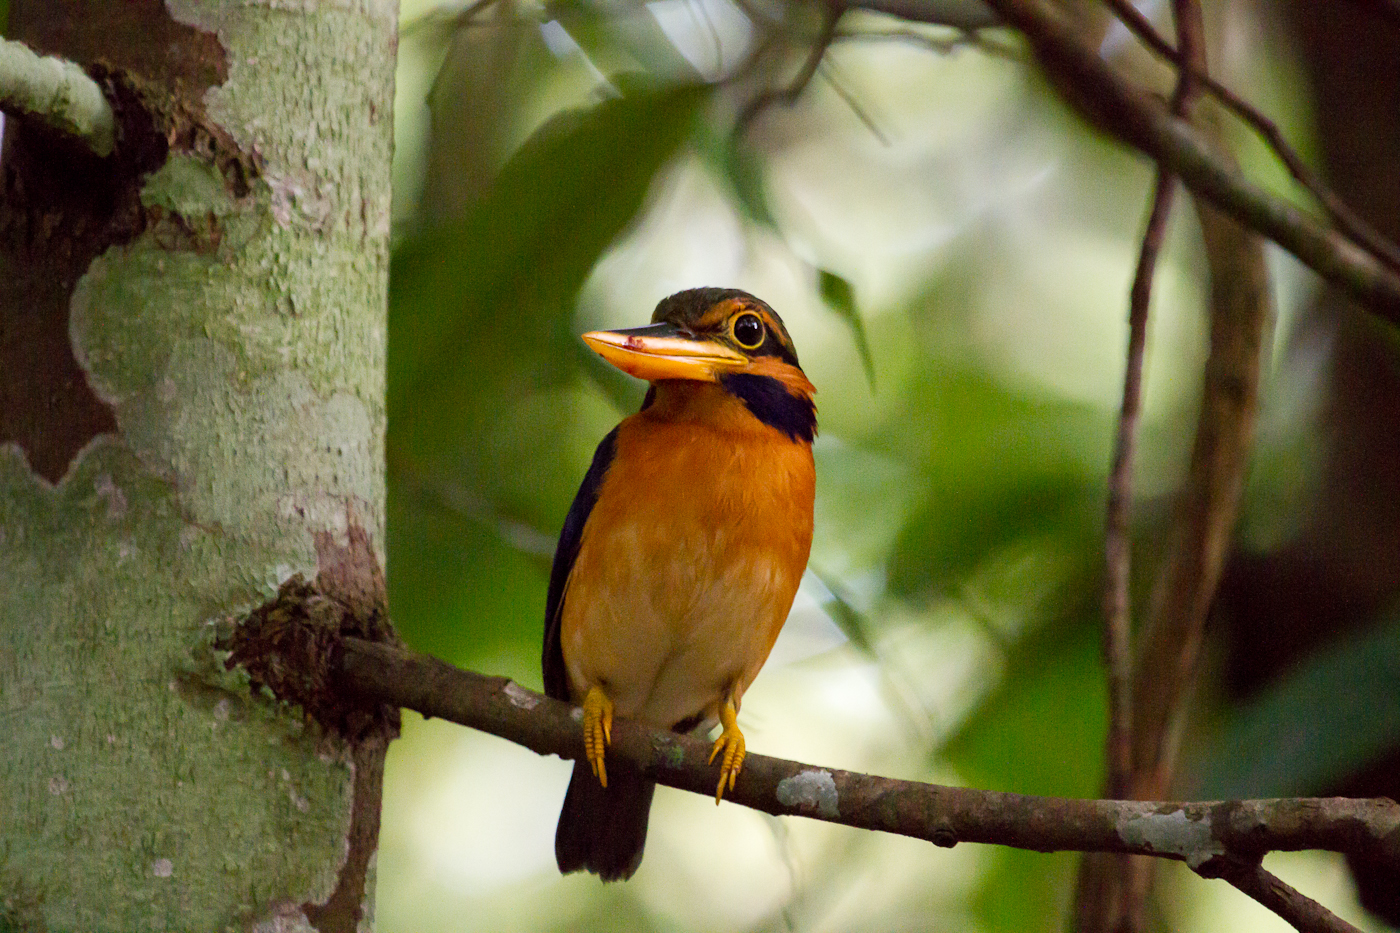 Rufous-Collared Kingfisher, Sabah, Borneo, April 2014